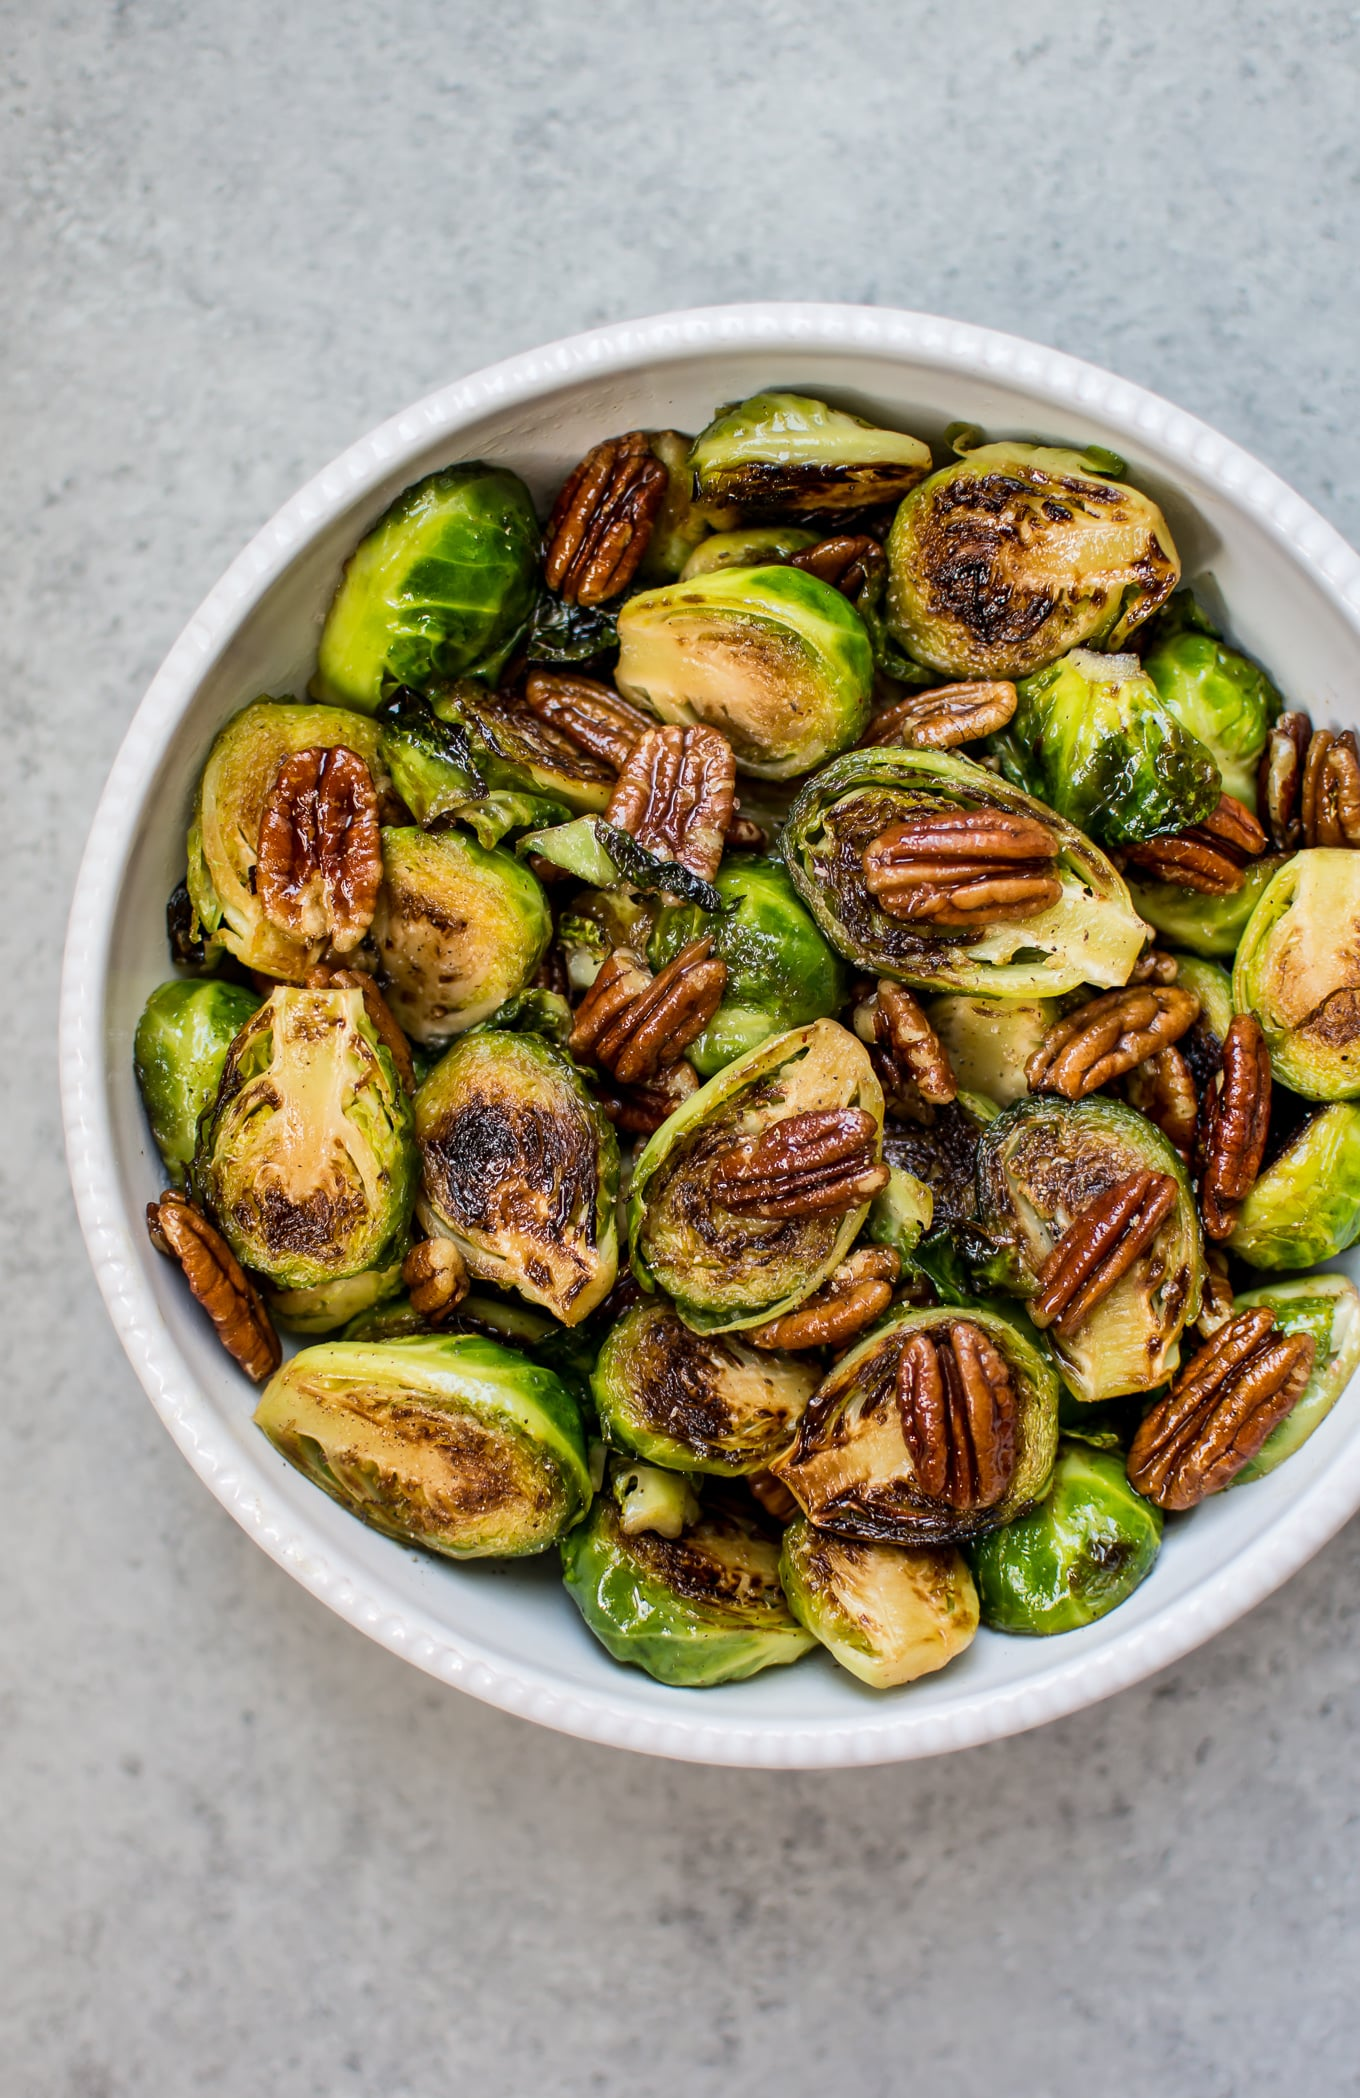 These maple pecan Brussels sprouts are the perfect savory-sweet side dish. Easy to make and ready in less than 20 minutes!